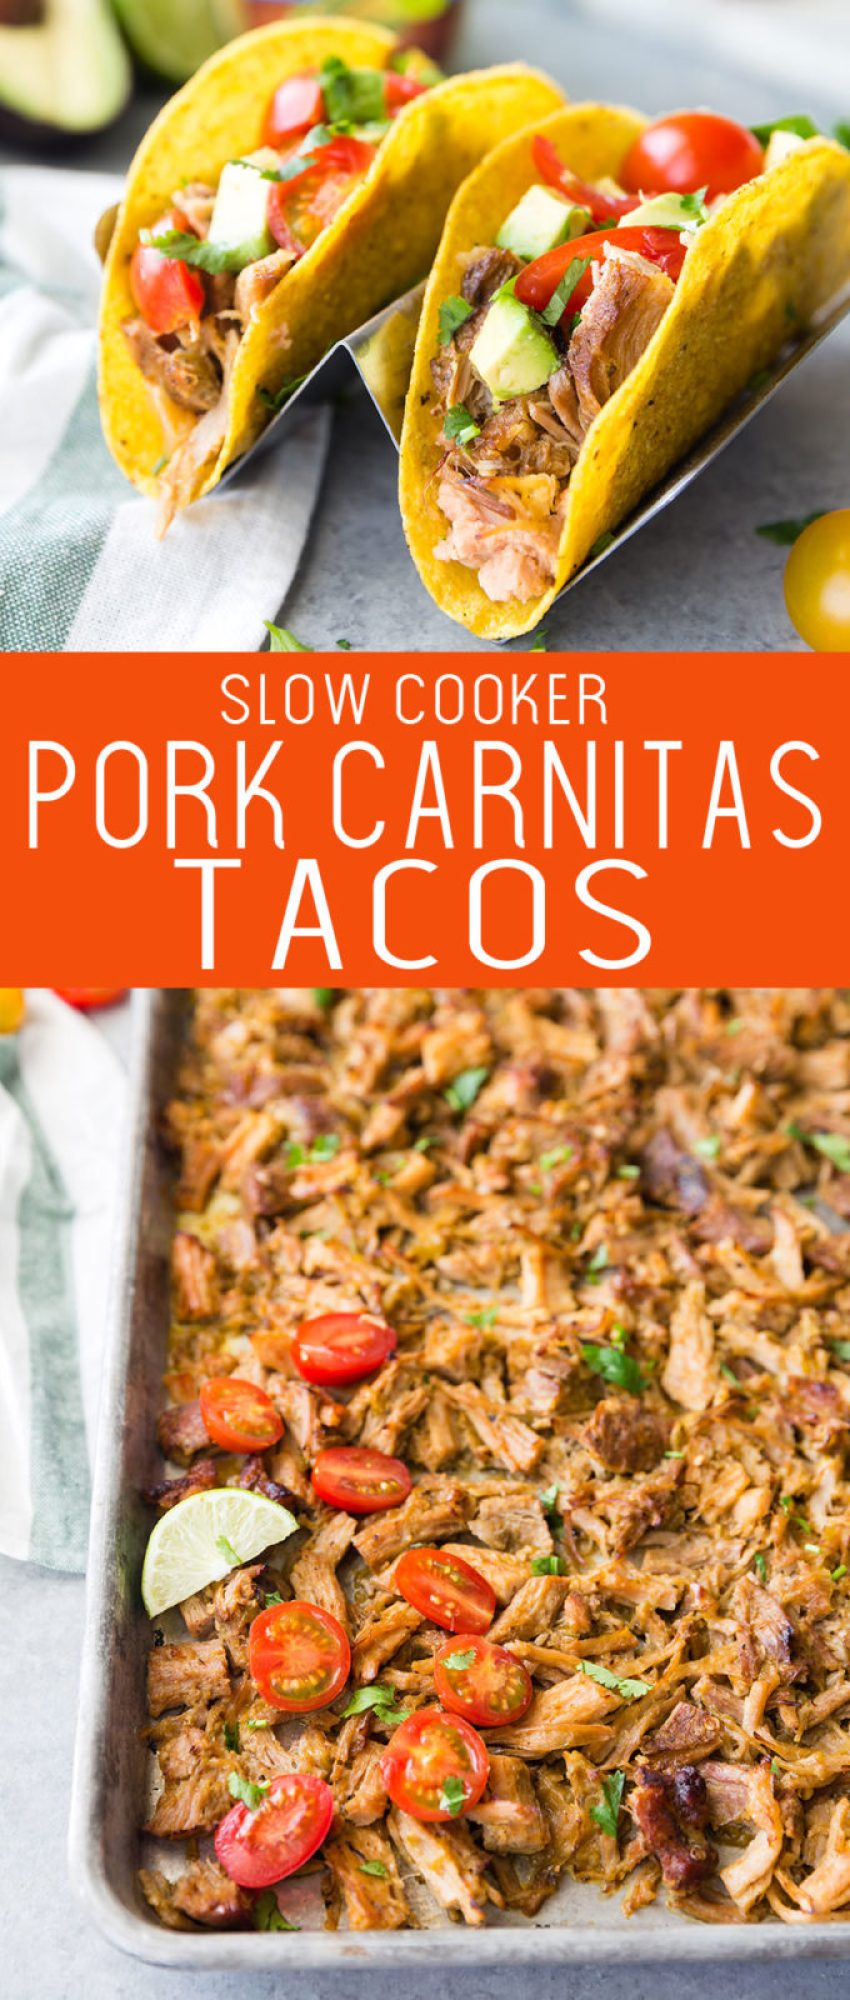 Delicious and easy to make slow cooker pork carnitas tacos. Perfectly seasoned carnitas layered in a hard shell to make tasty tacos.